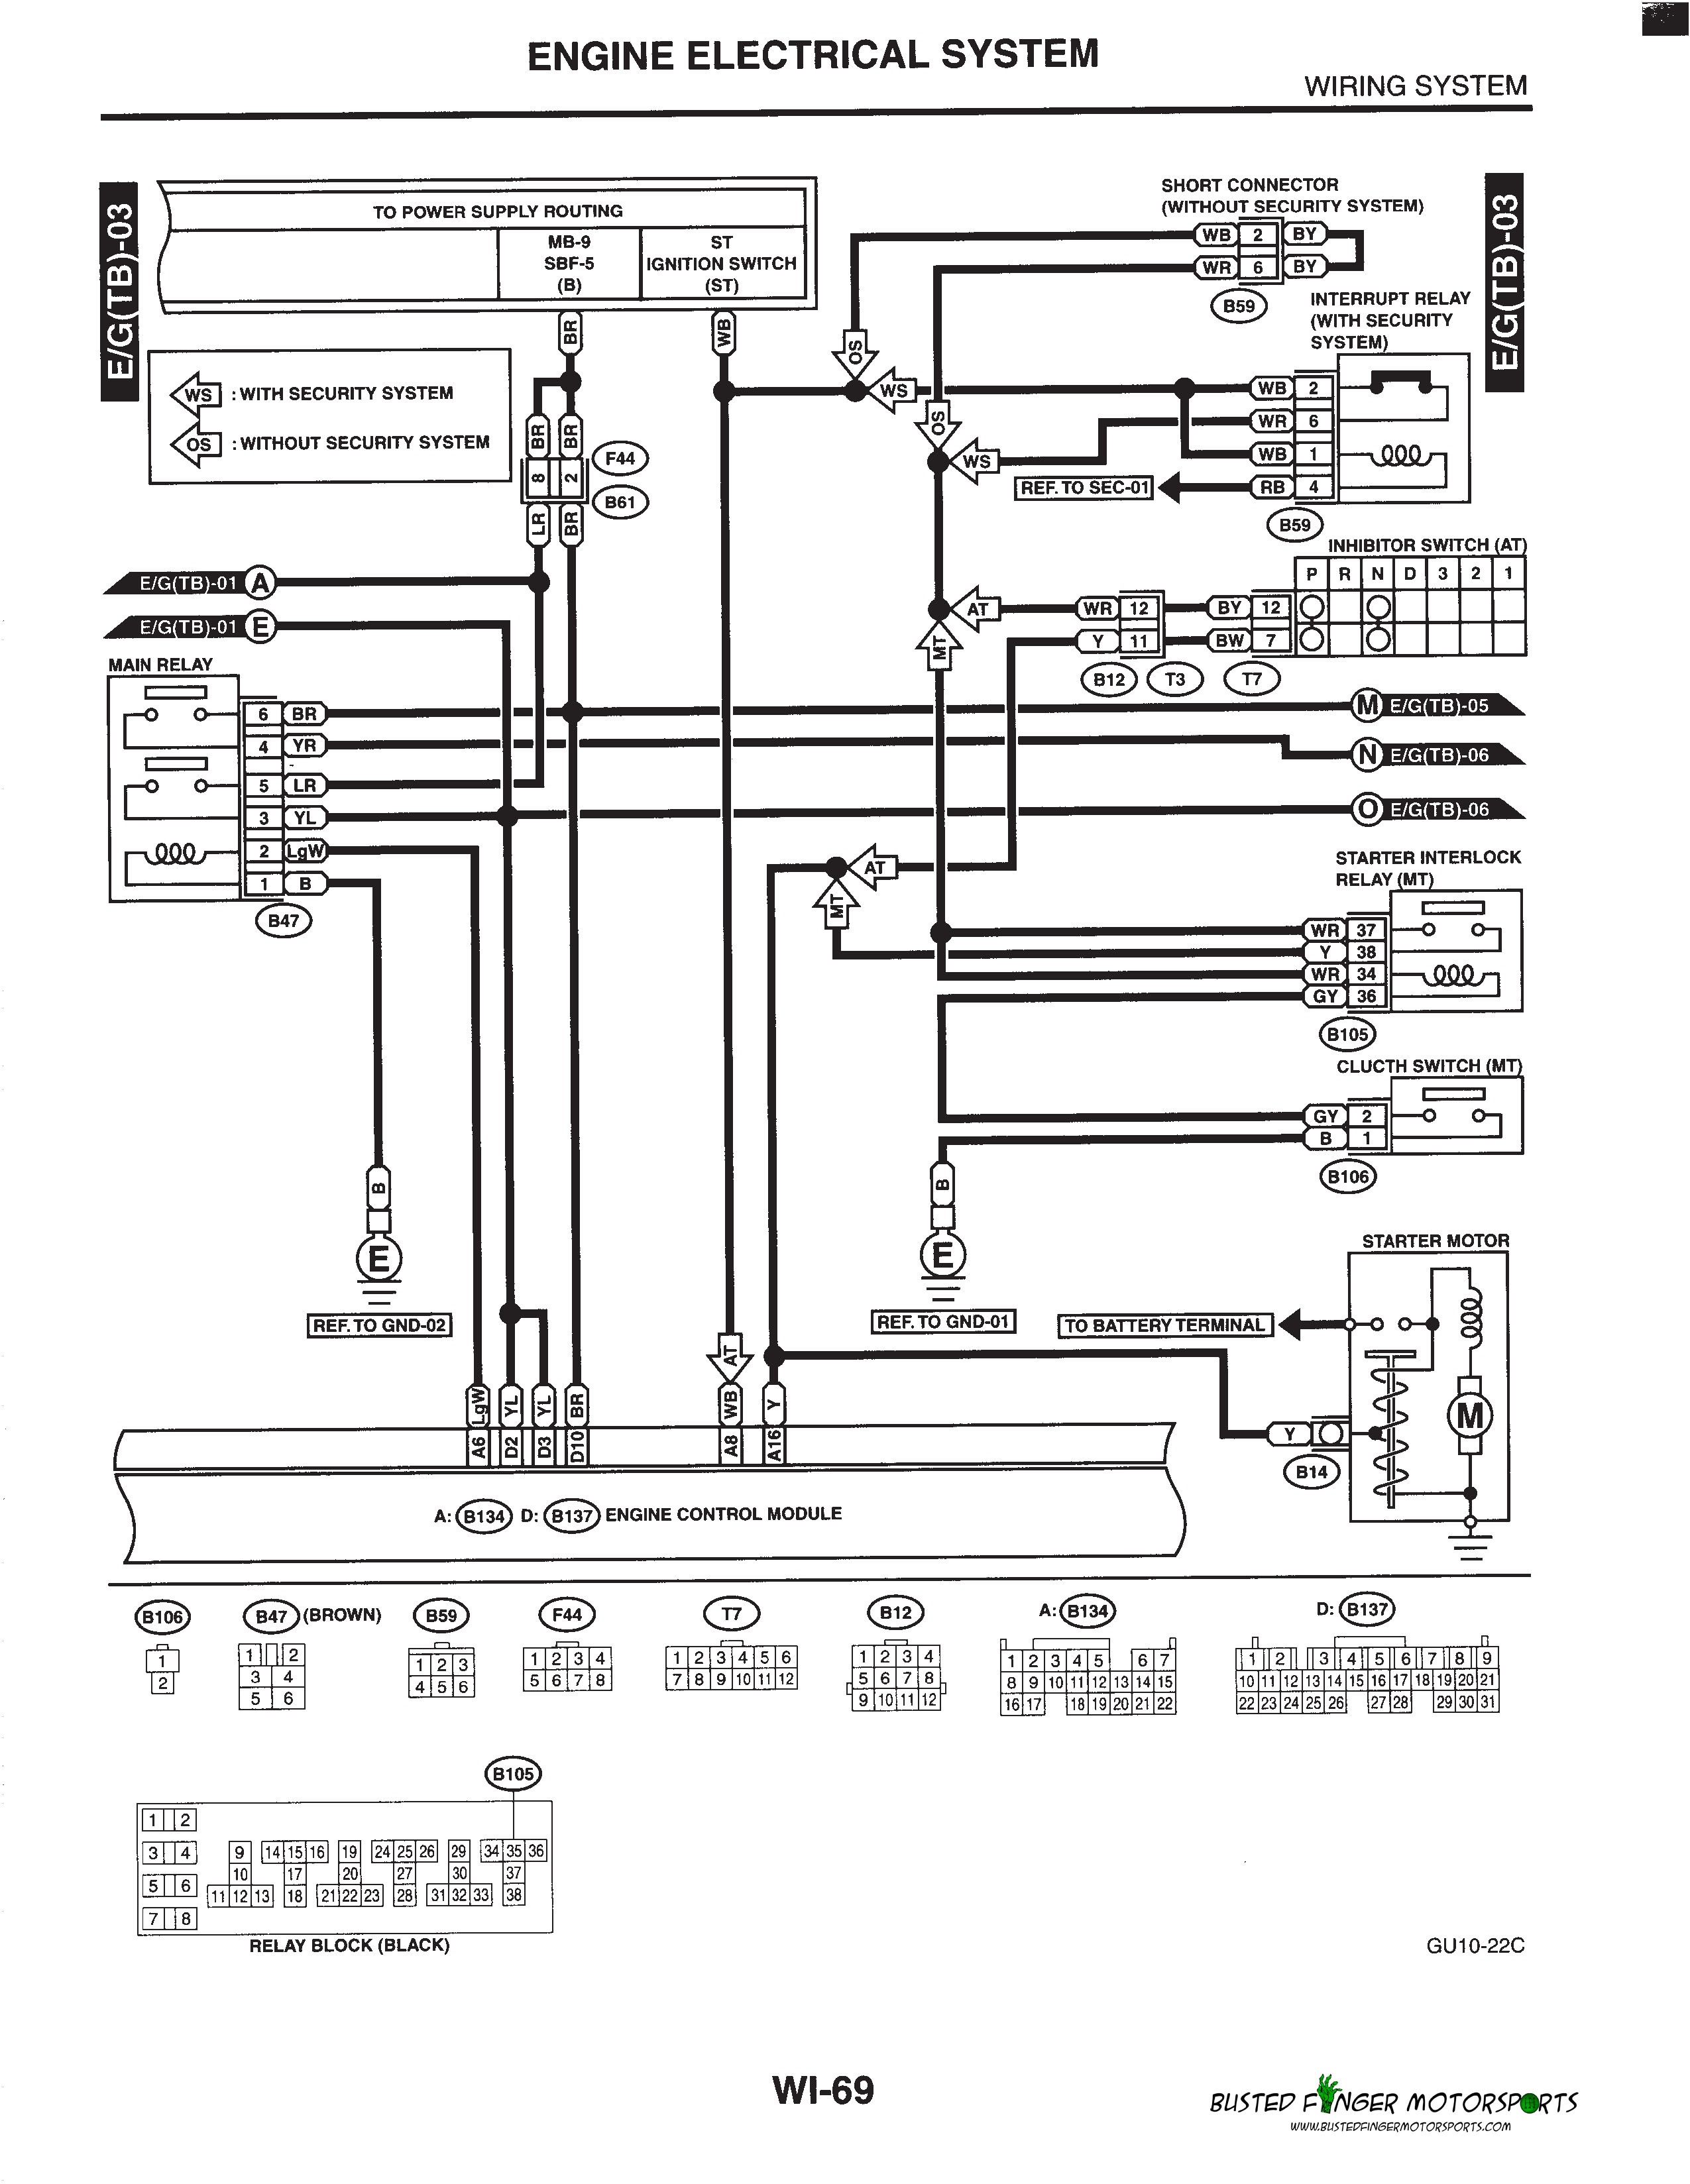 Amp Netconnect Cat5e Wiring Diagram